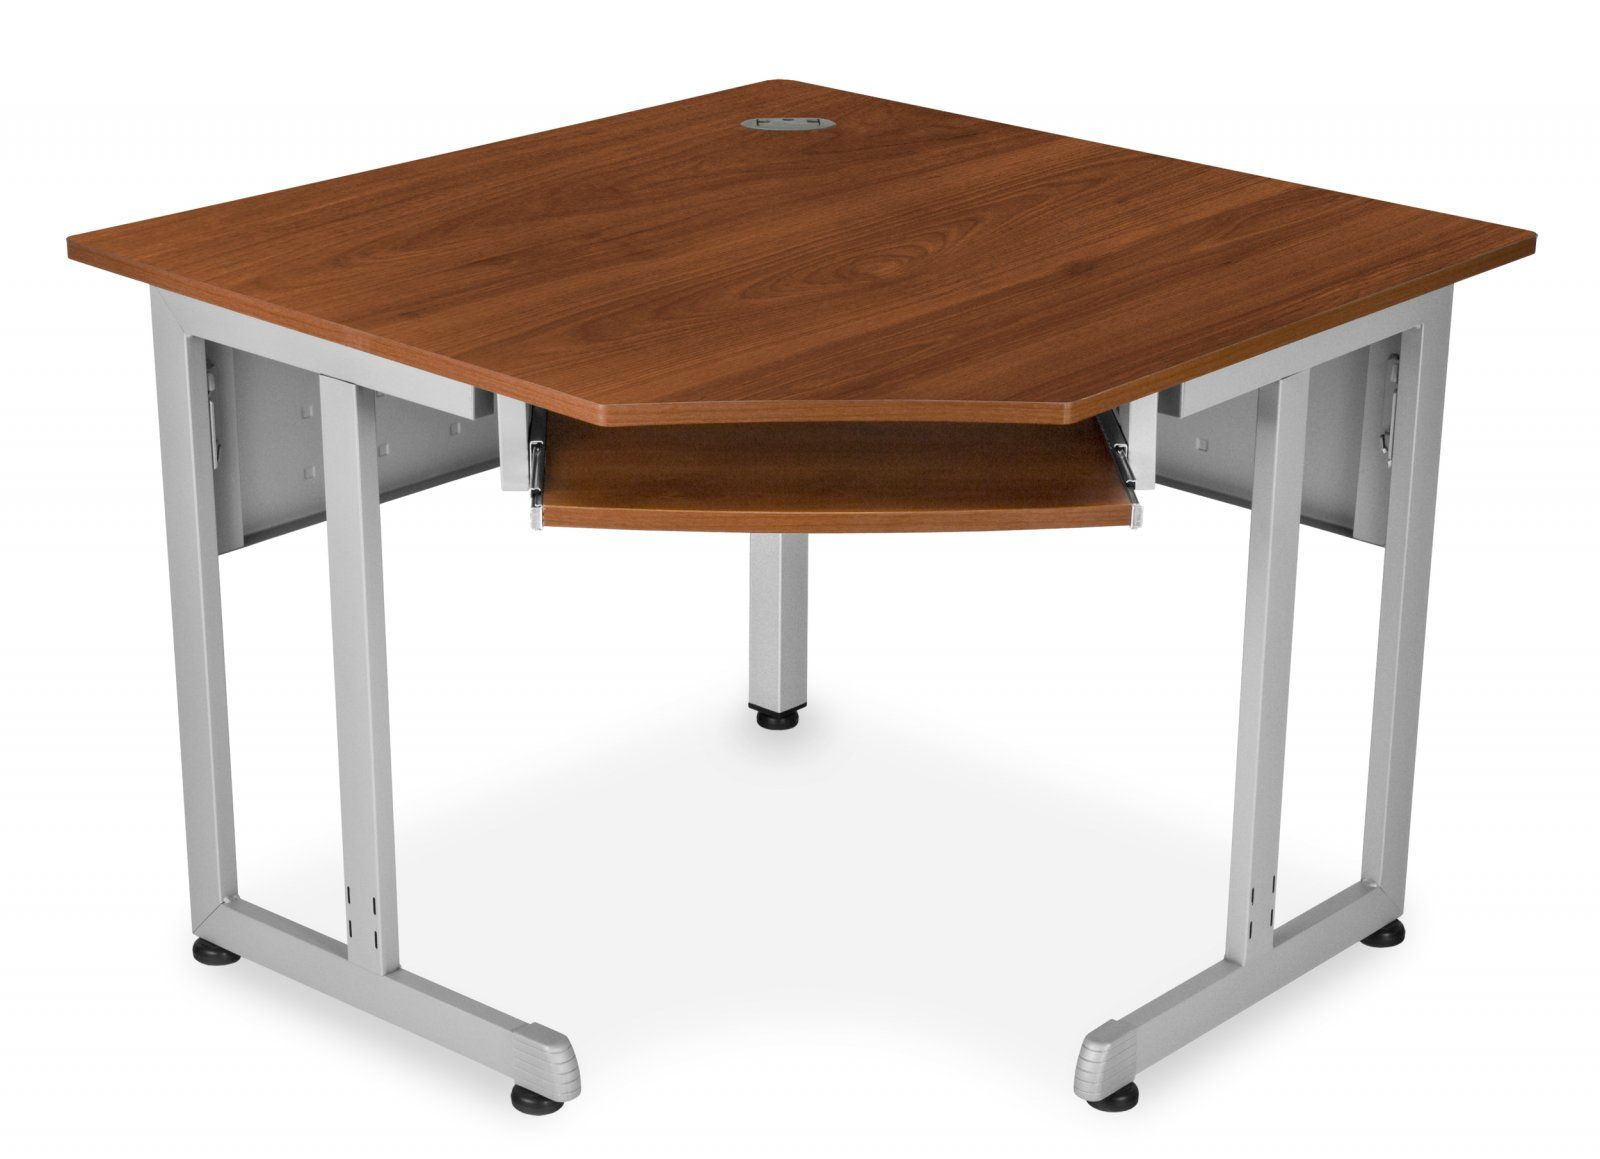 Ofm 5 Sided Corner Table 30x30 Furniture Corner Table Corner